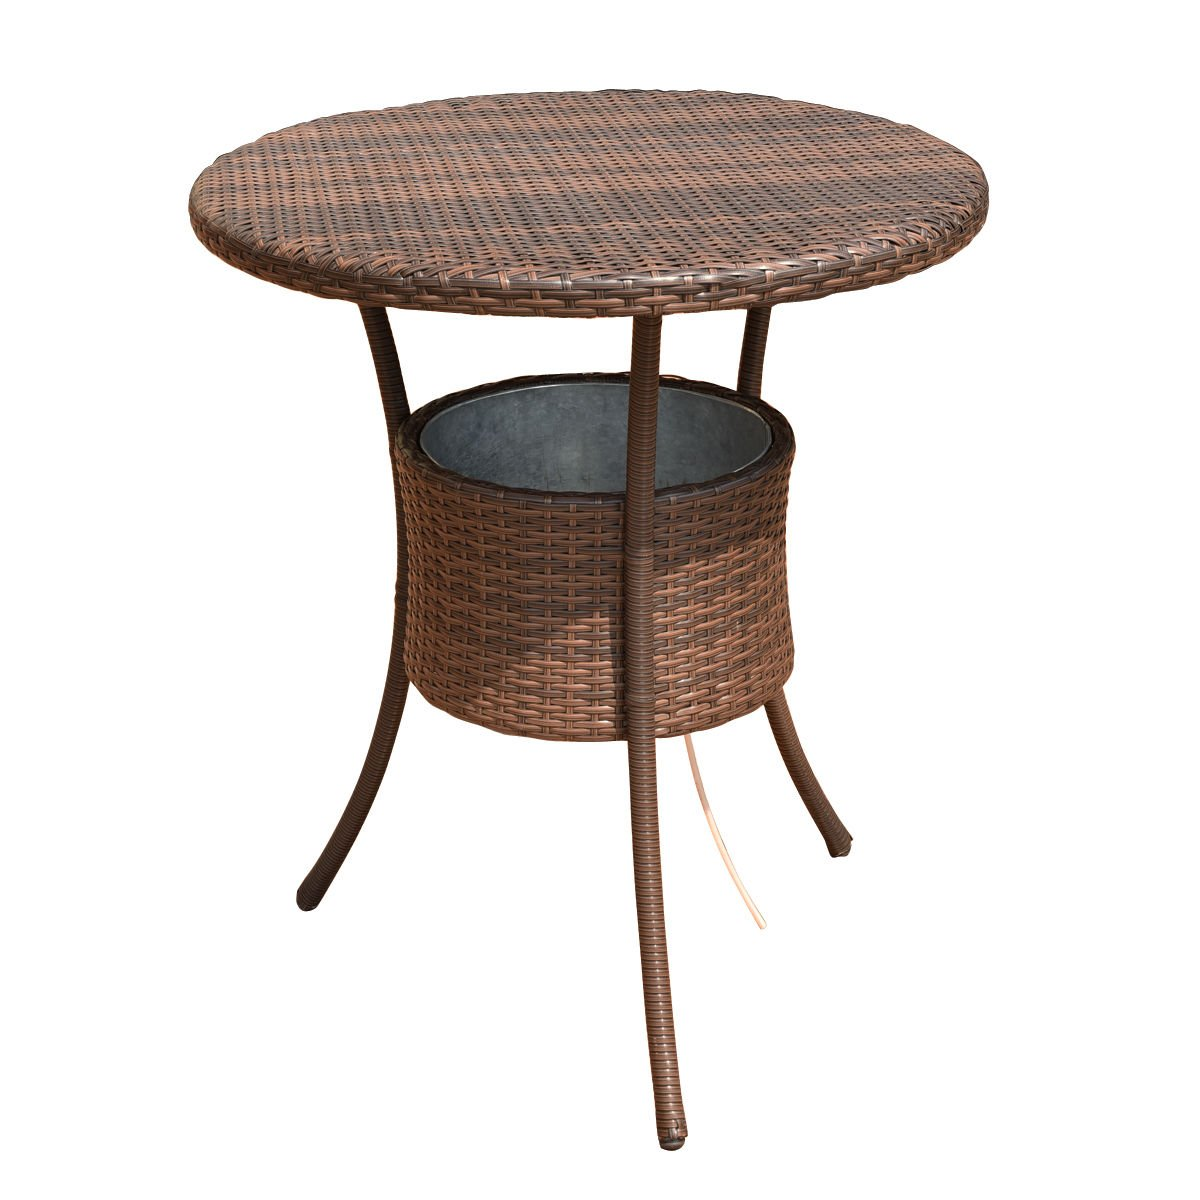 Cooler Table Outdoor Patio 31.5'' Ice Cool Bar Party Deck Pool Bucket Rattan